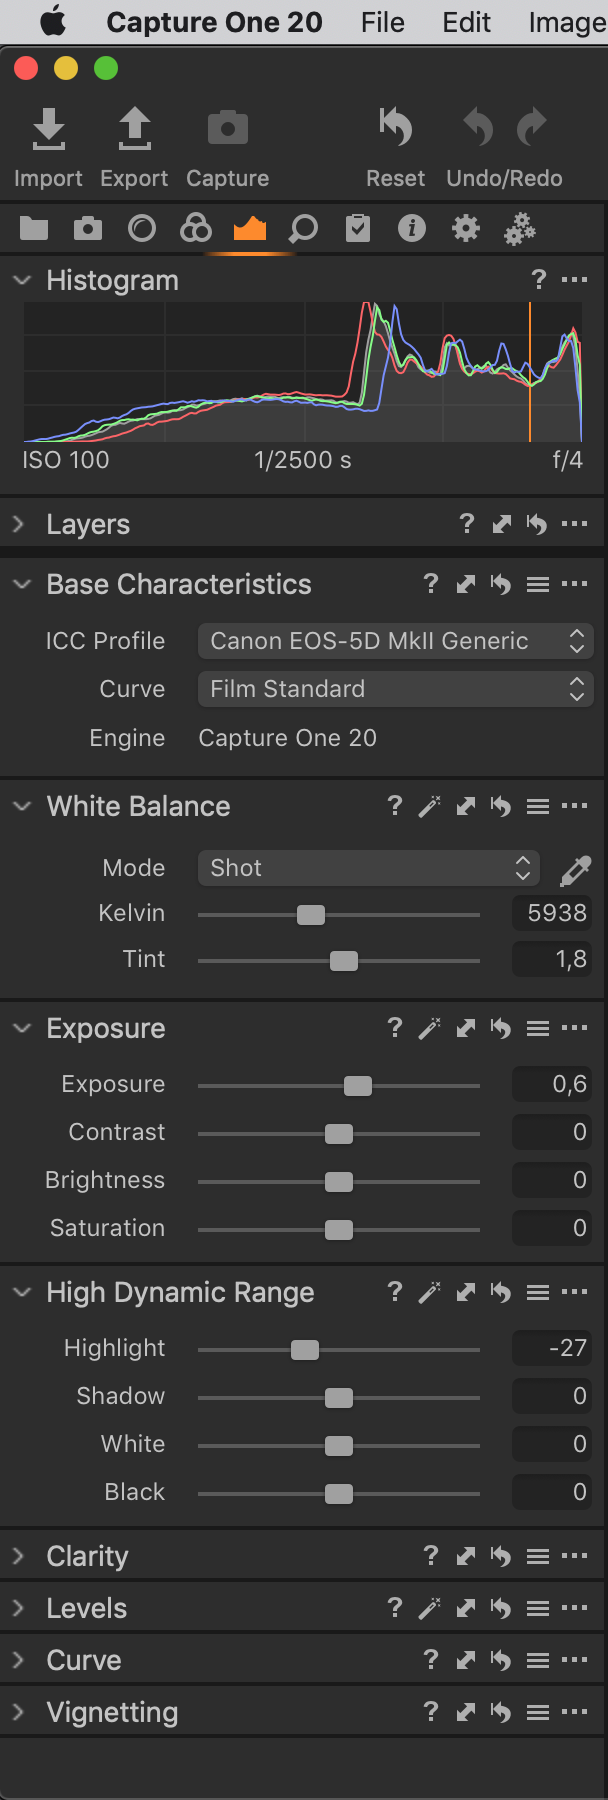 capture one 20.1, exposure tool tab, default workspace